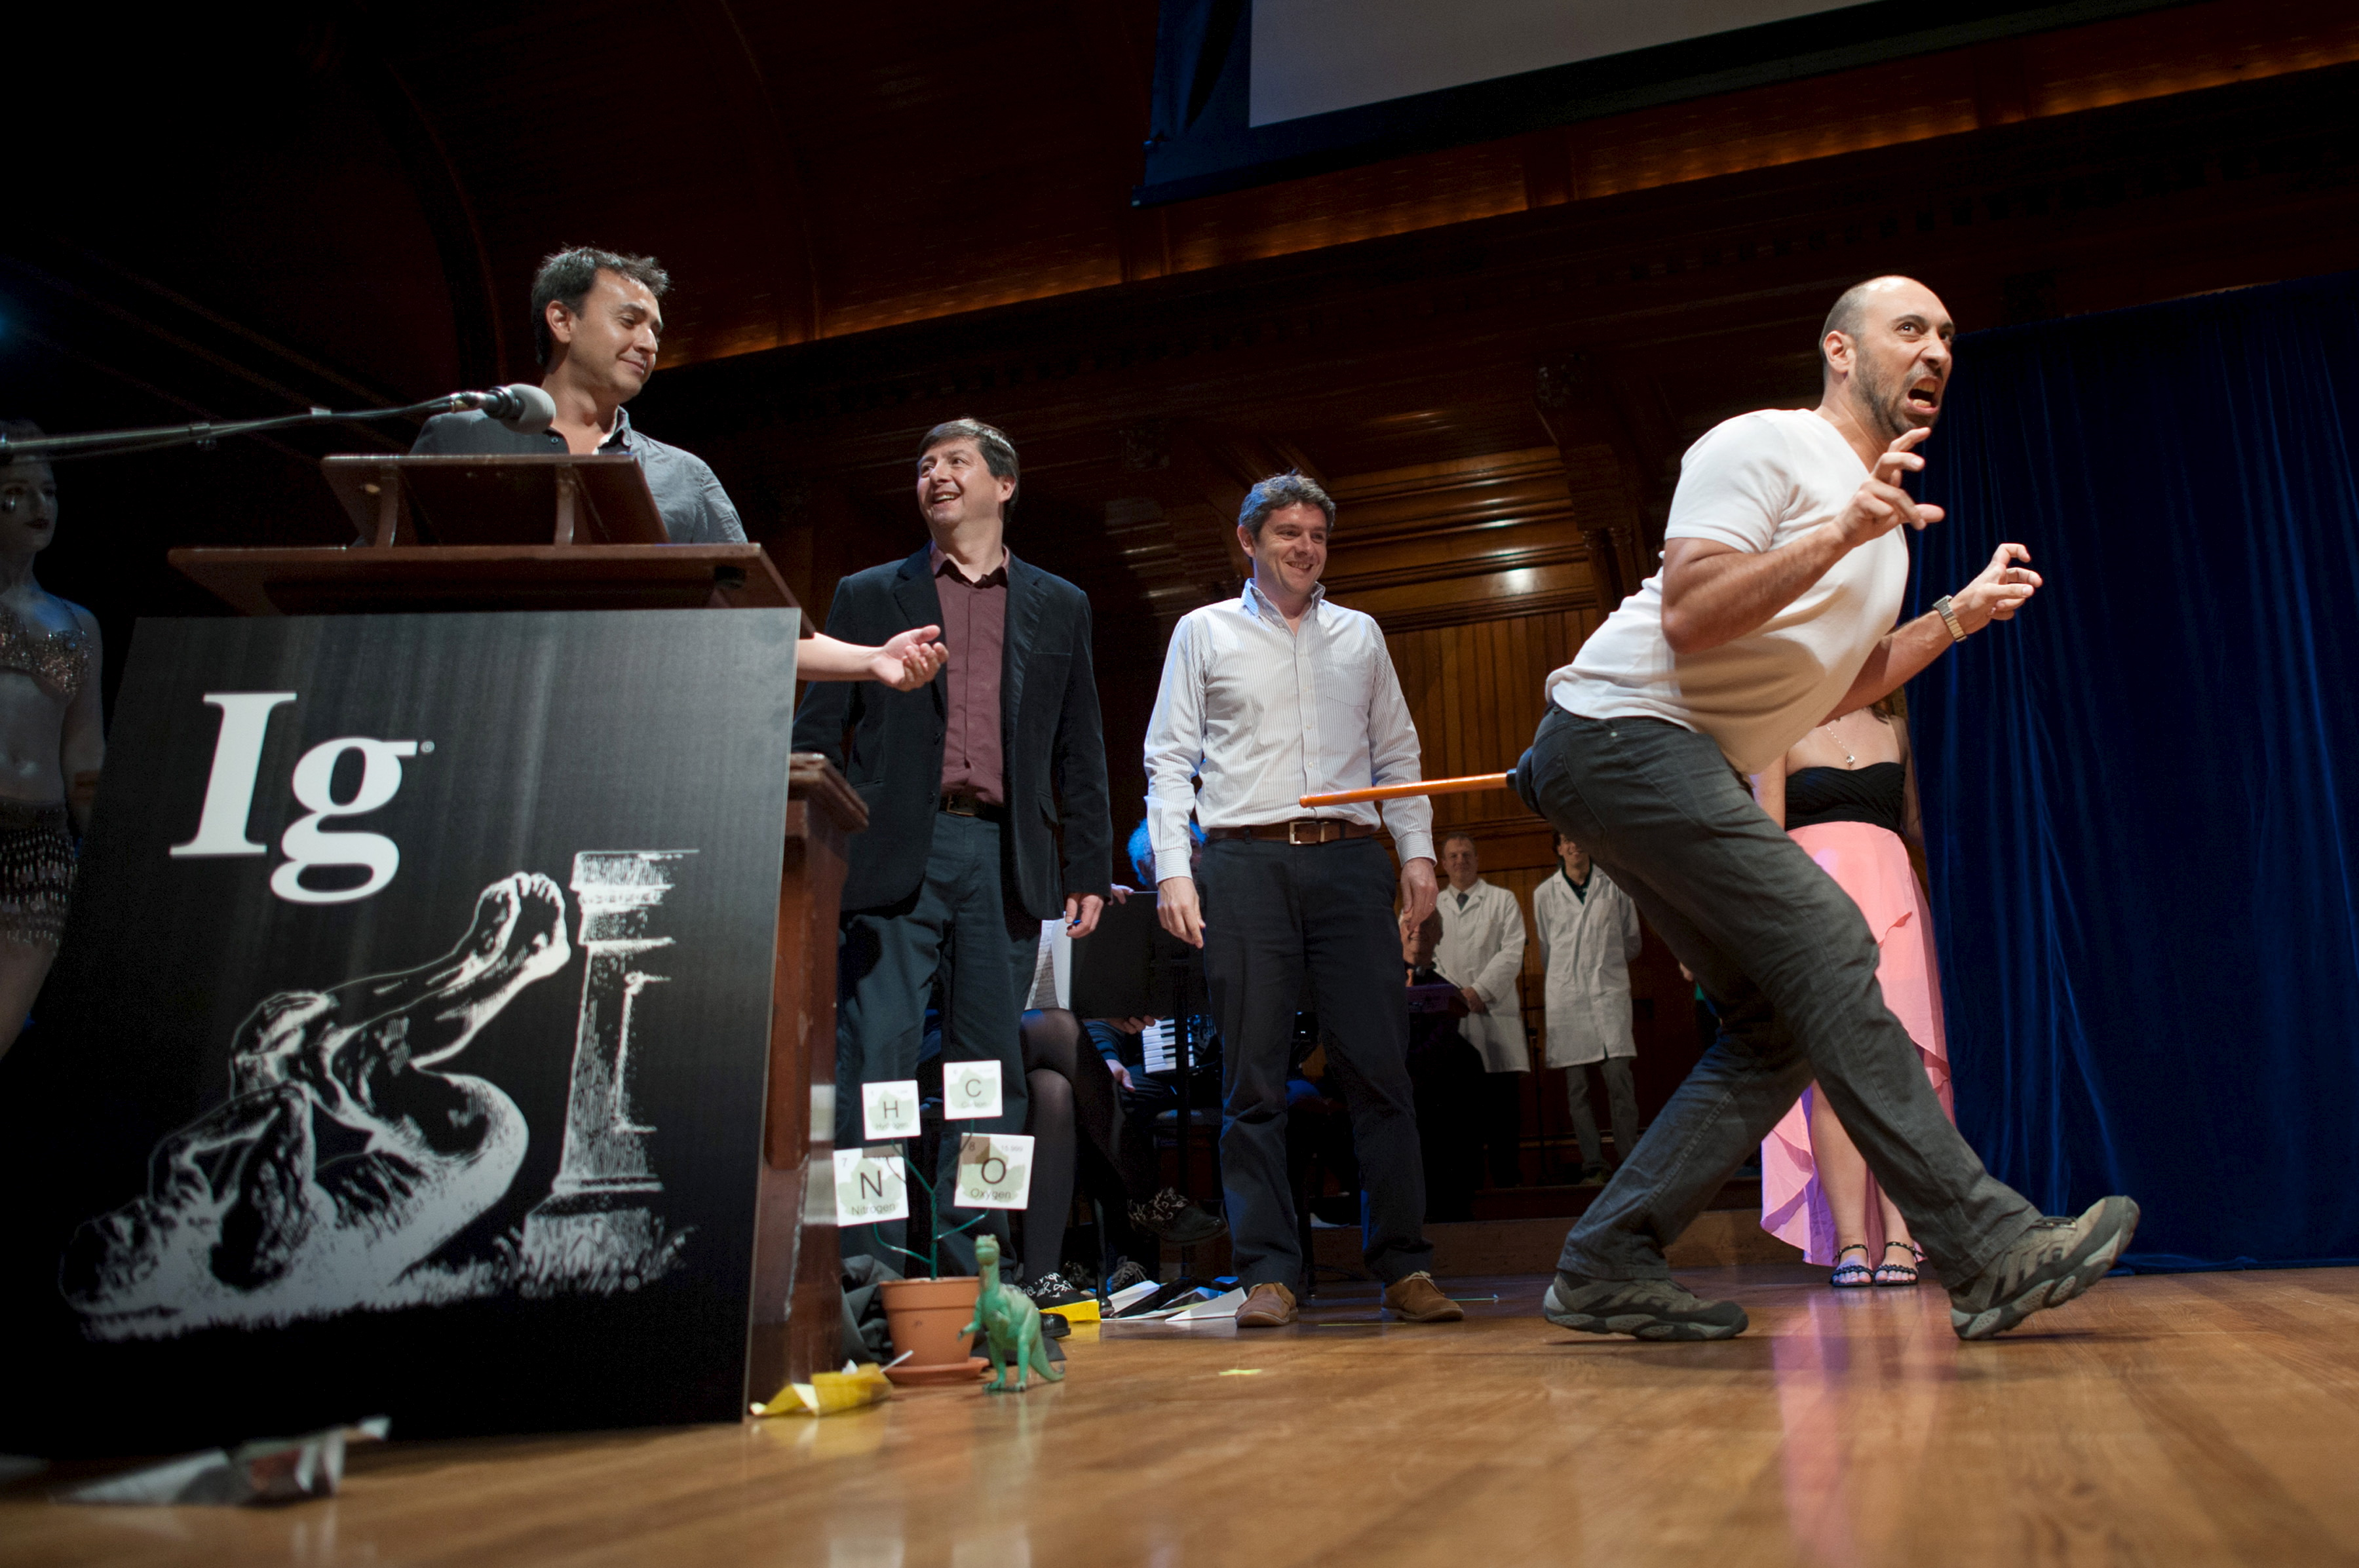 Bruno Grossi (R), walks like a dinosaur as he and his team accept the Ig Nobel Prize in Biology at the 25th First Annual Ig Nobel Prizes awards ceremony at Harvard University in Cambridge, Massachusetts. He and his team observed that when you attach a weighted stick to the rear end of a chicken, it would move in a manner similar to a dinosaur. Photo by Gretchen Ertl/Reuters